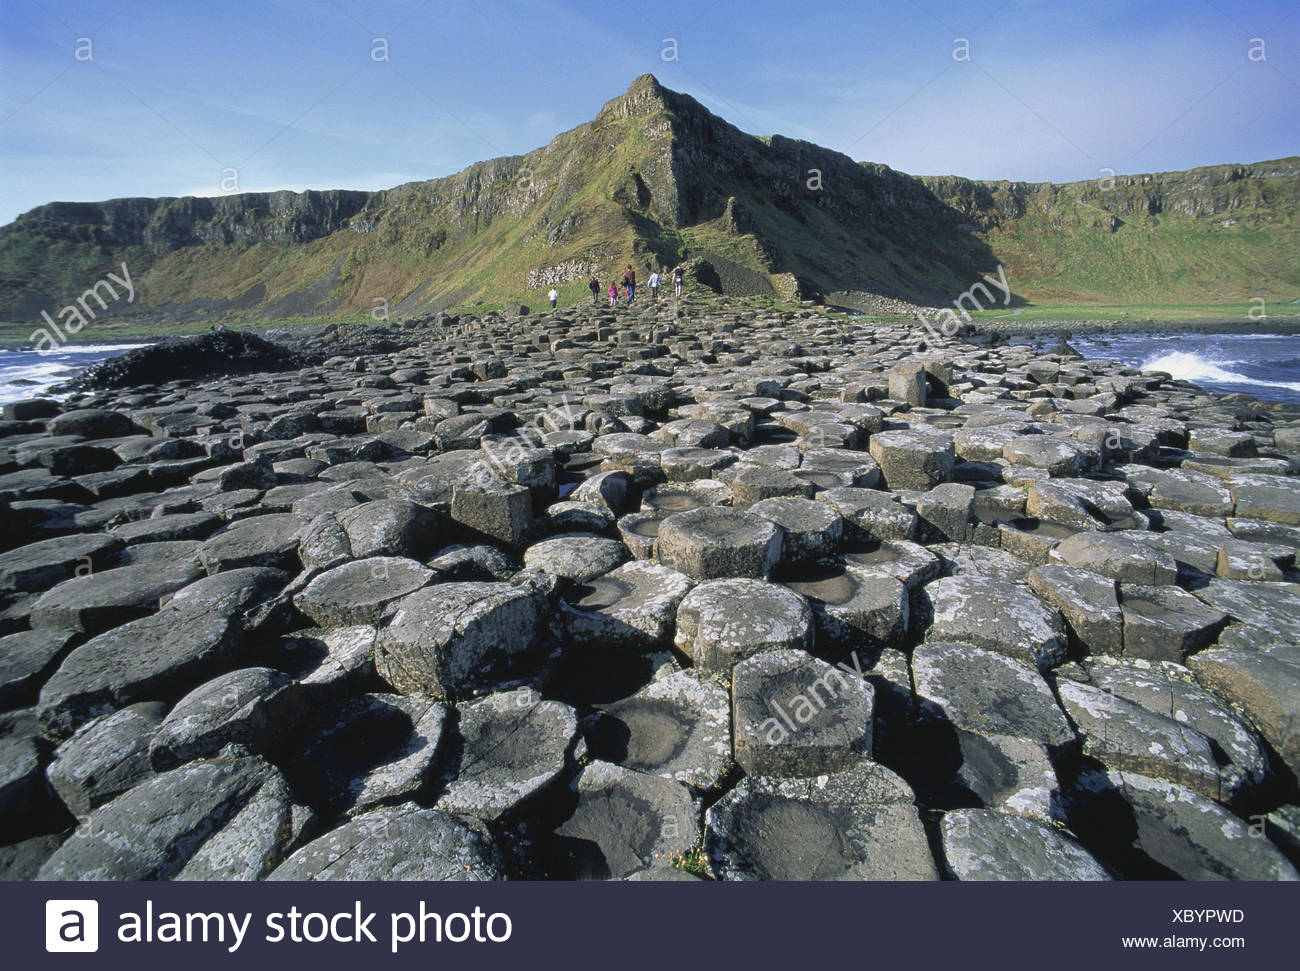 Northern Ireland, county Antrim, bile coast, Giant's Causeway, tourist Ireland, Northern Ireland, coast, basalt, basalt rock, formation, Volcanically, place of interest, nature miracle, coast, outpouring rock, volcano rock, lava rock, cliff coast paragraph, cliff coast - Stock Image